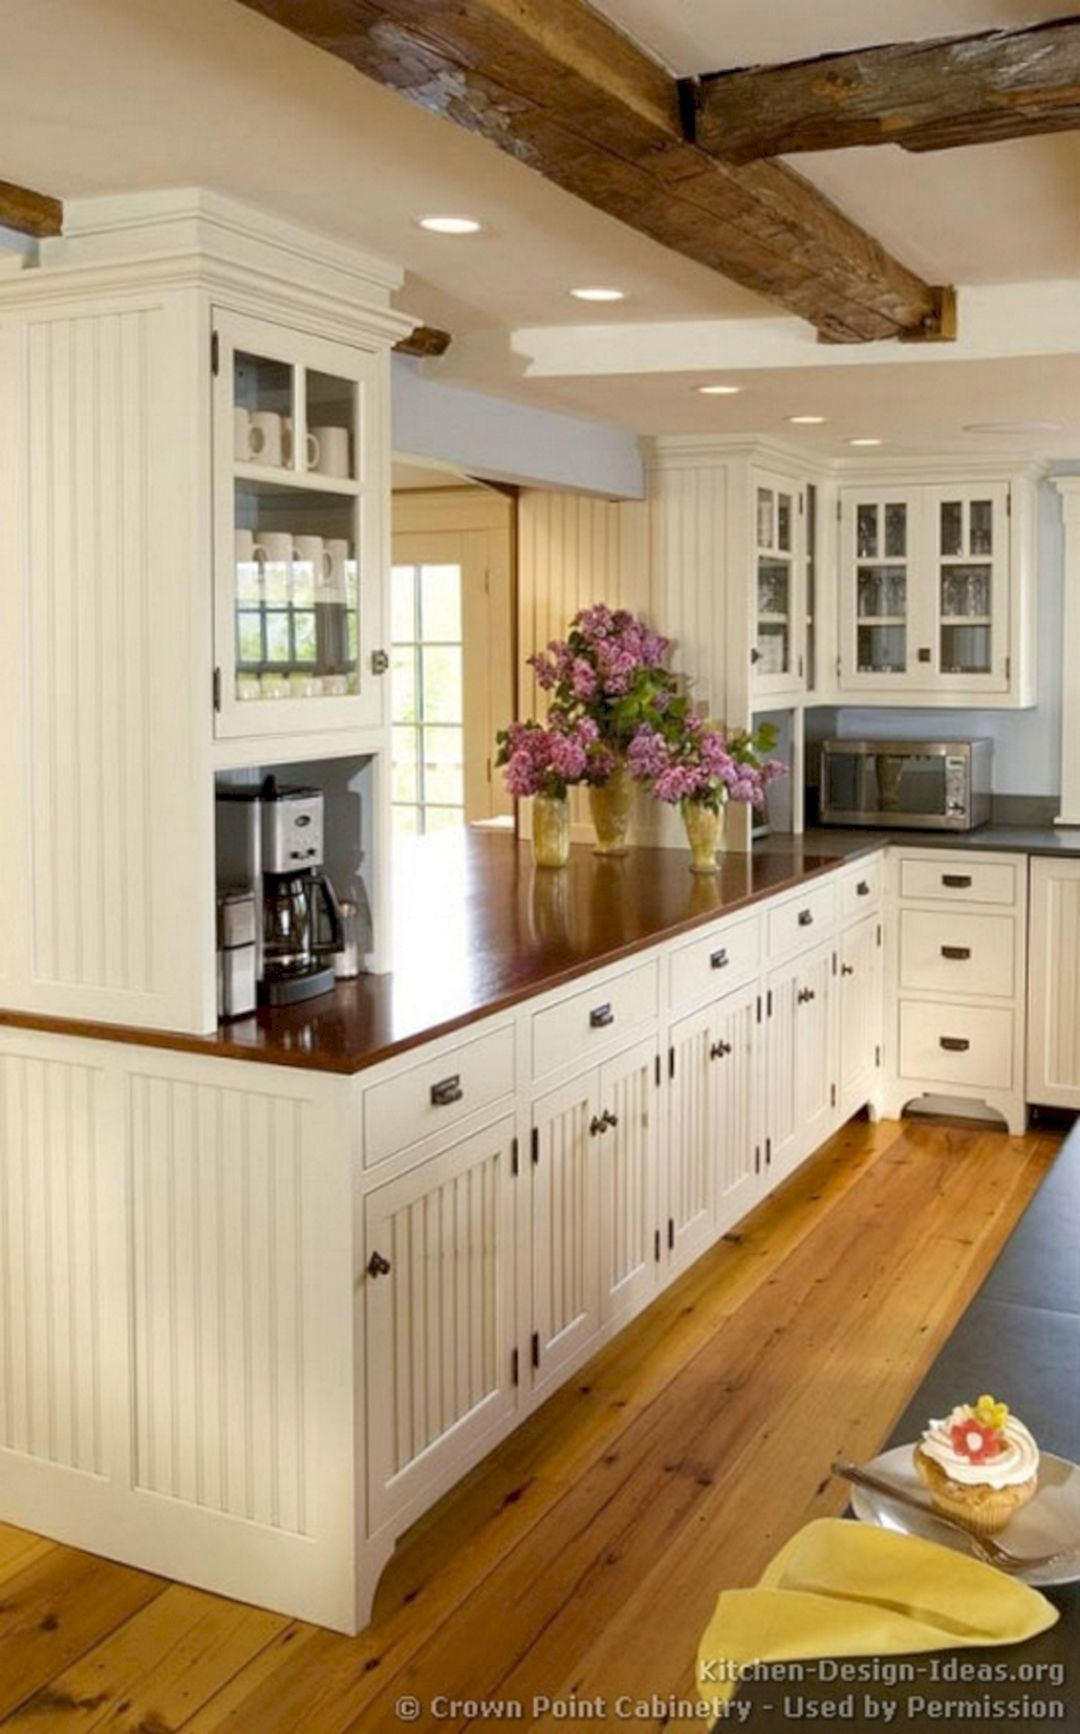 Awesome farmhouse kitchen design ideas farmhouse kitchens